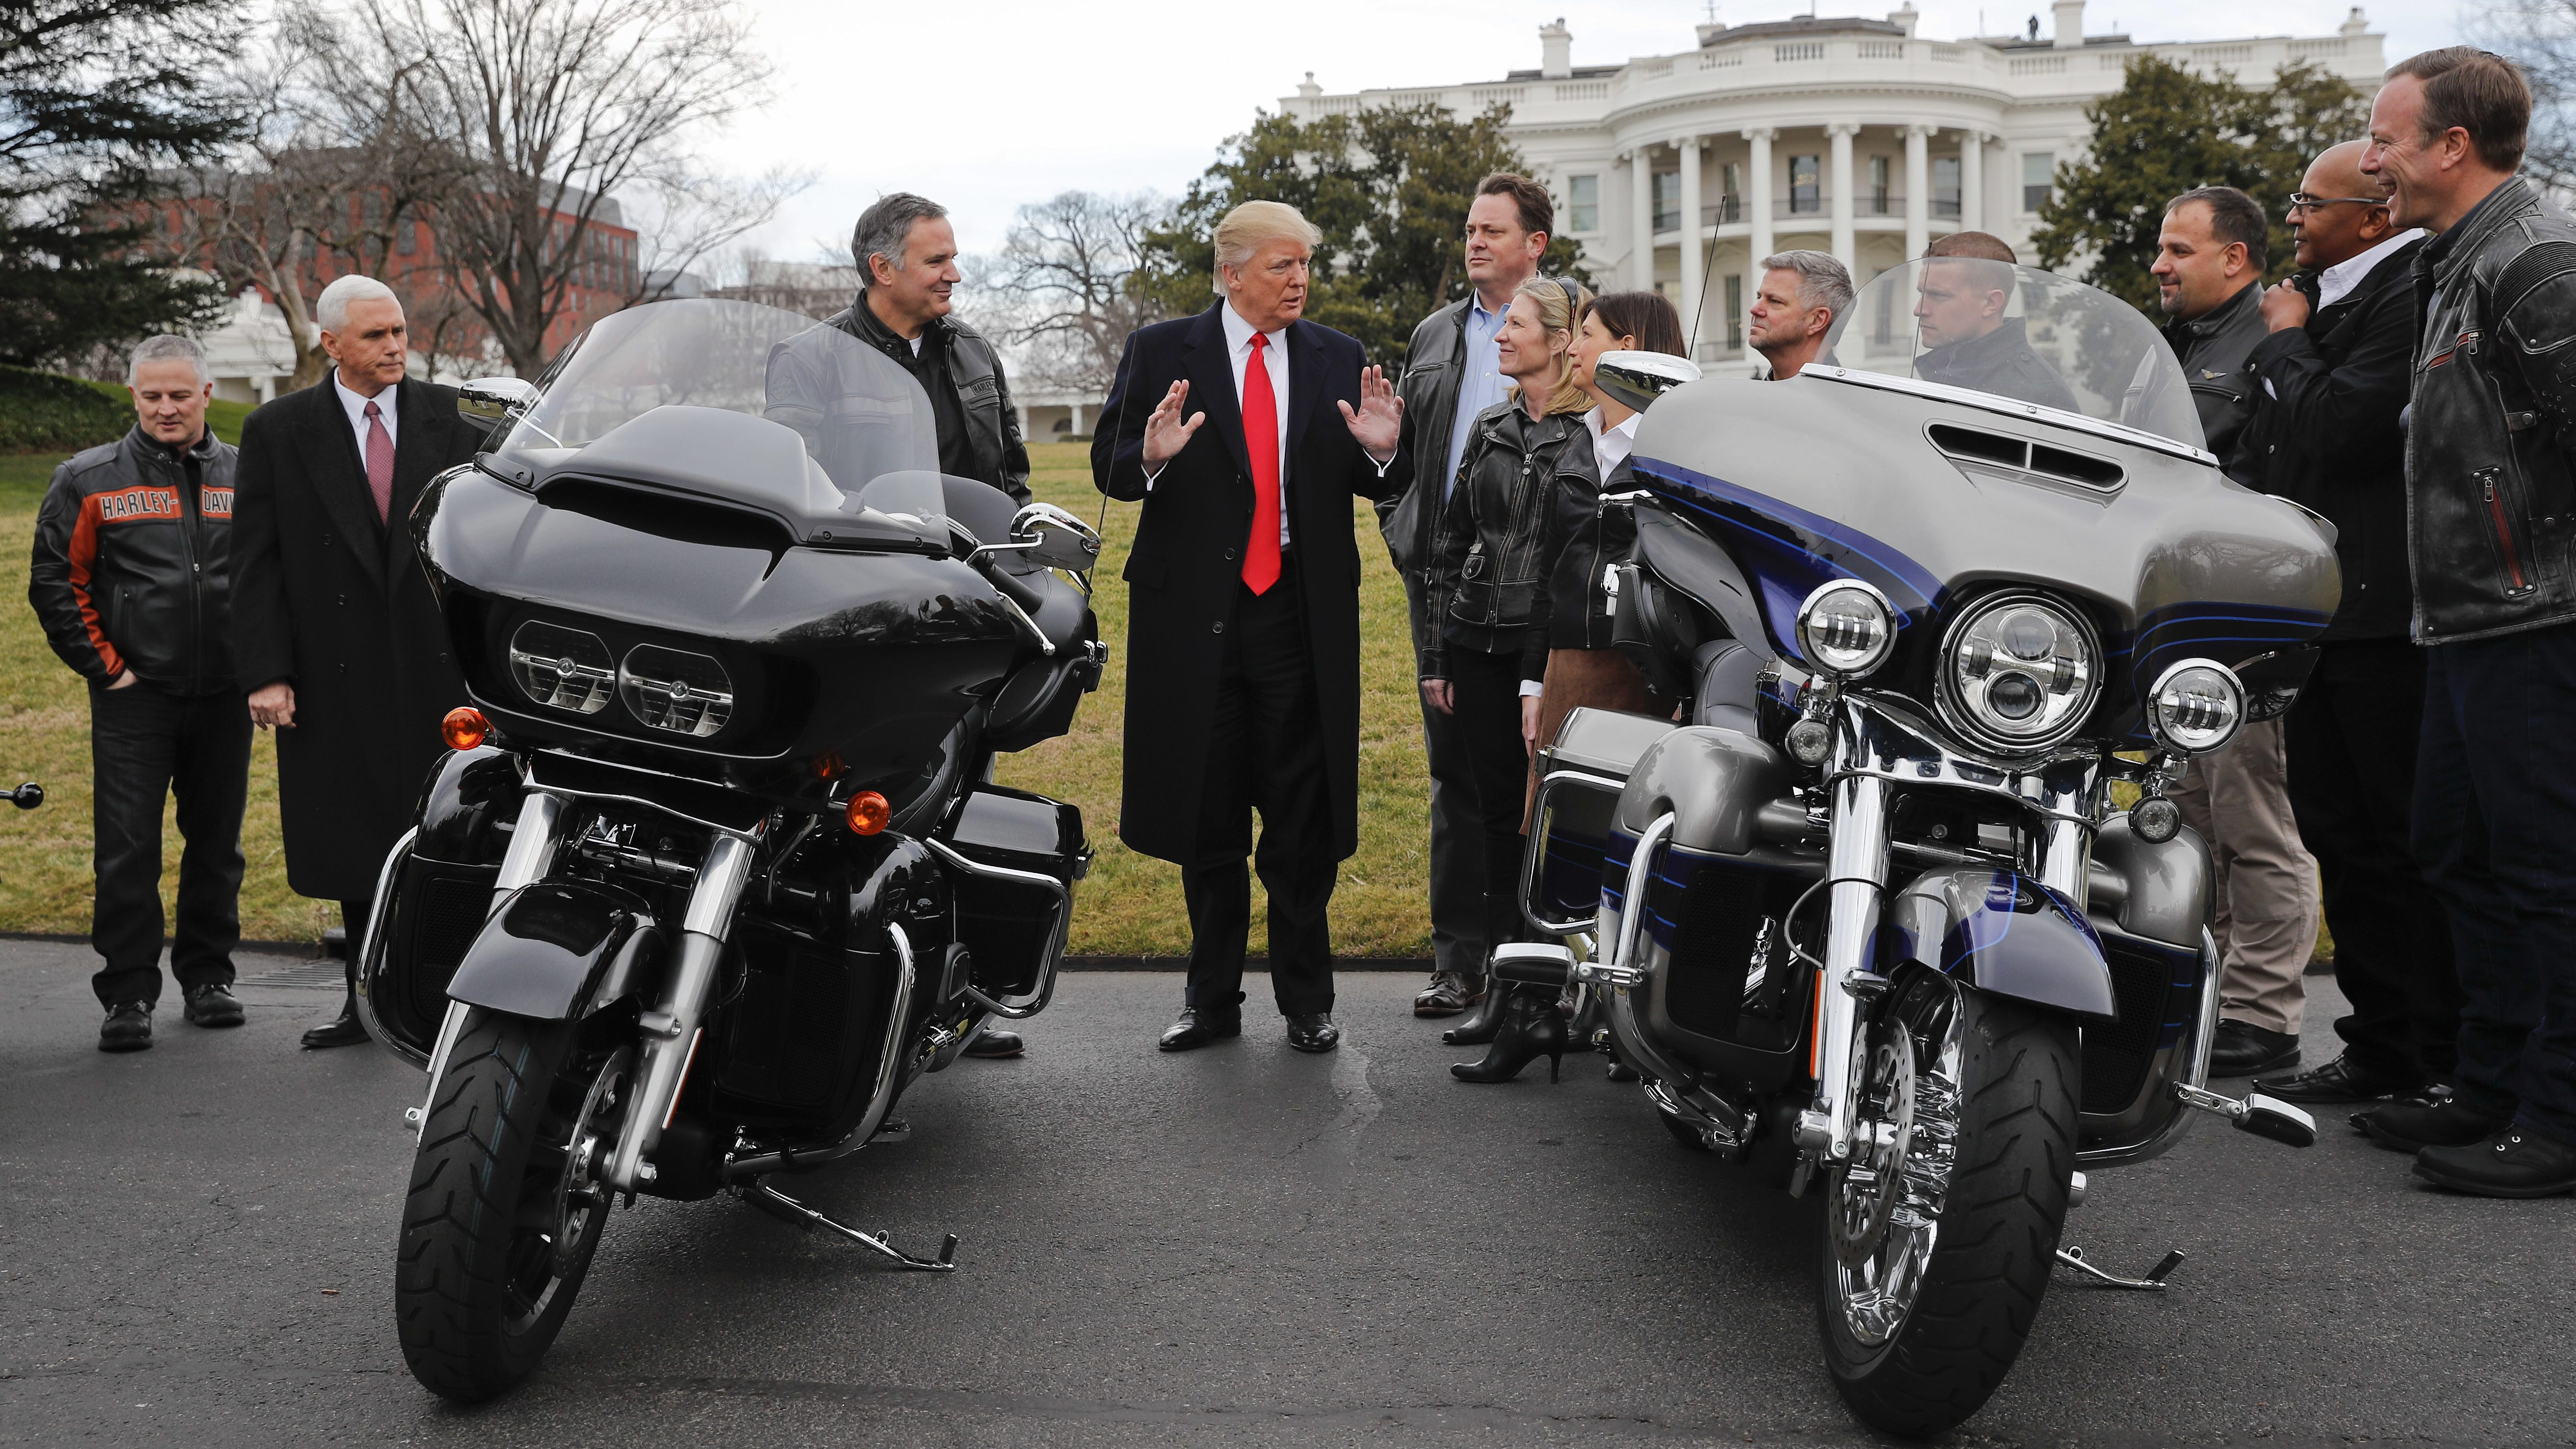 President Donald Trump and Vice President Mike Pence meet with Harley Davidson executives and Union Representatives on the South Lawn of the White House